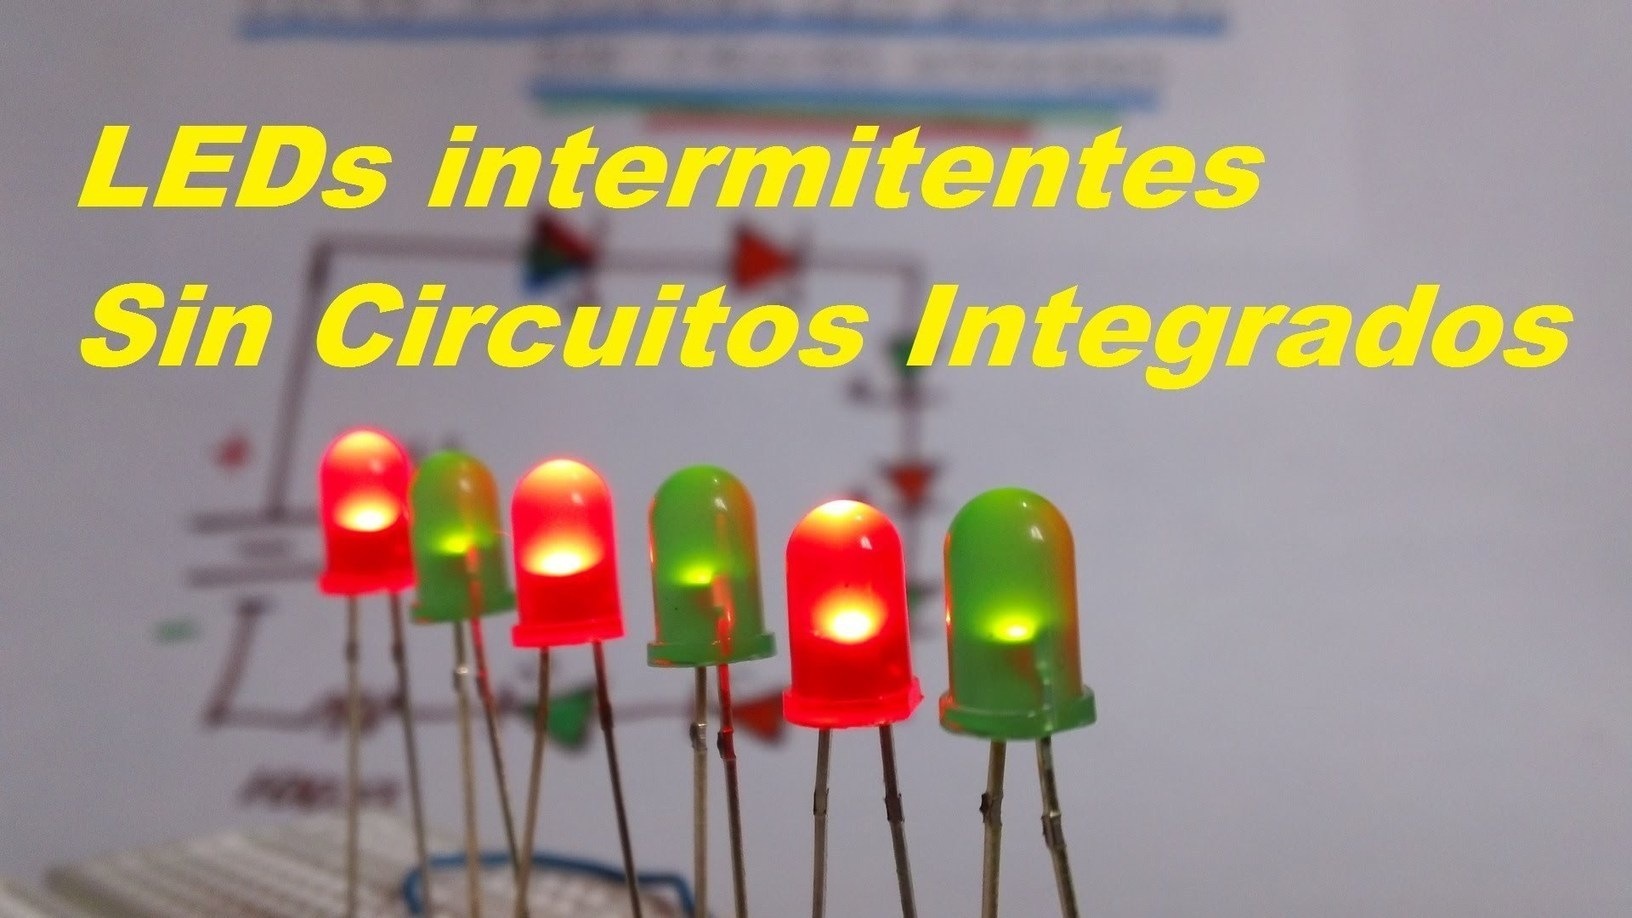 Circuito Led Intermitente : Leds intermitentes sin circuito integrado f aa